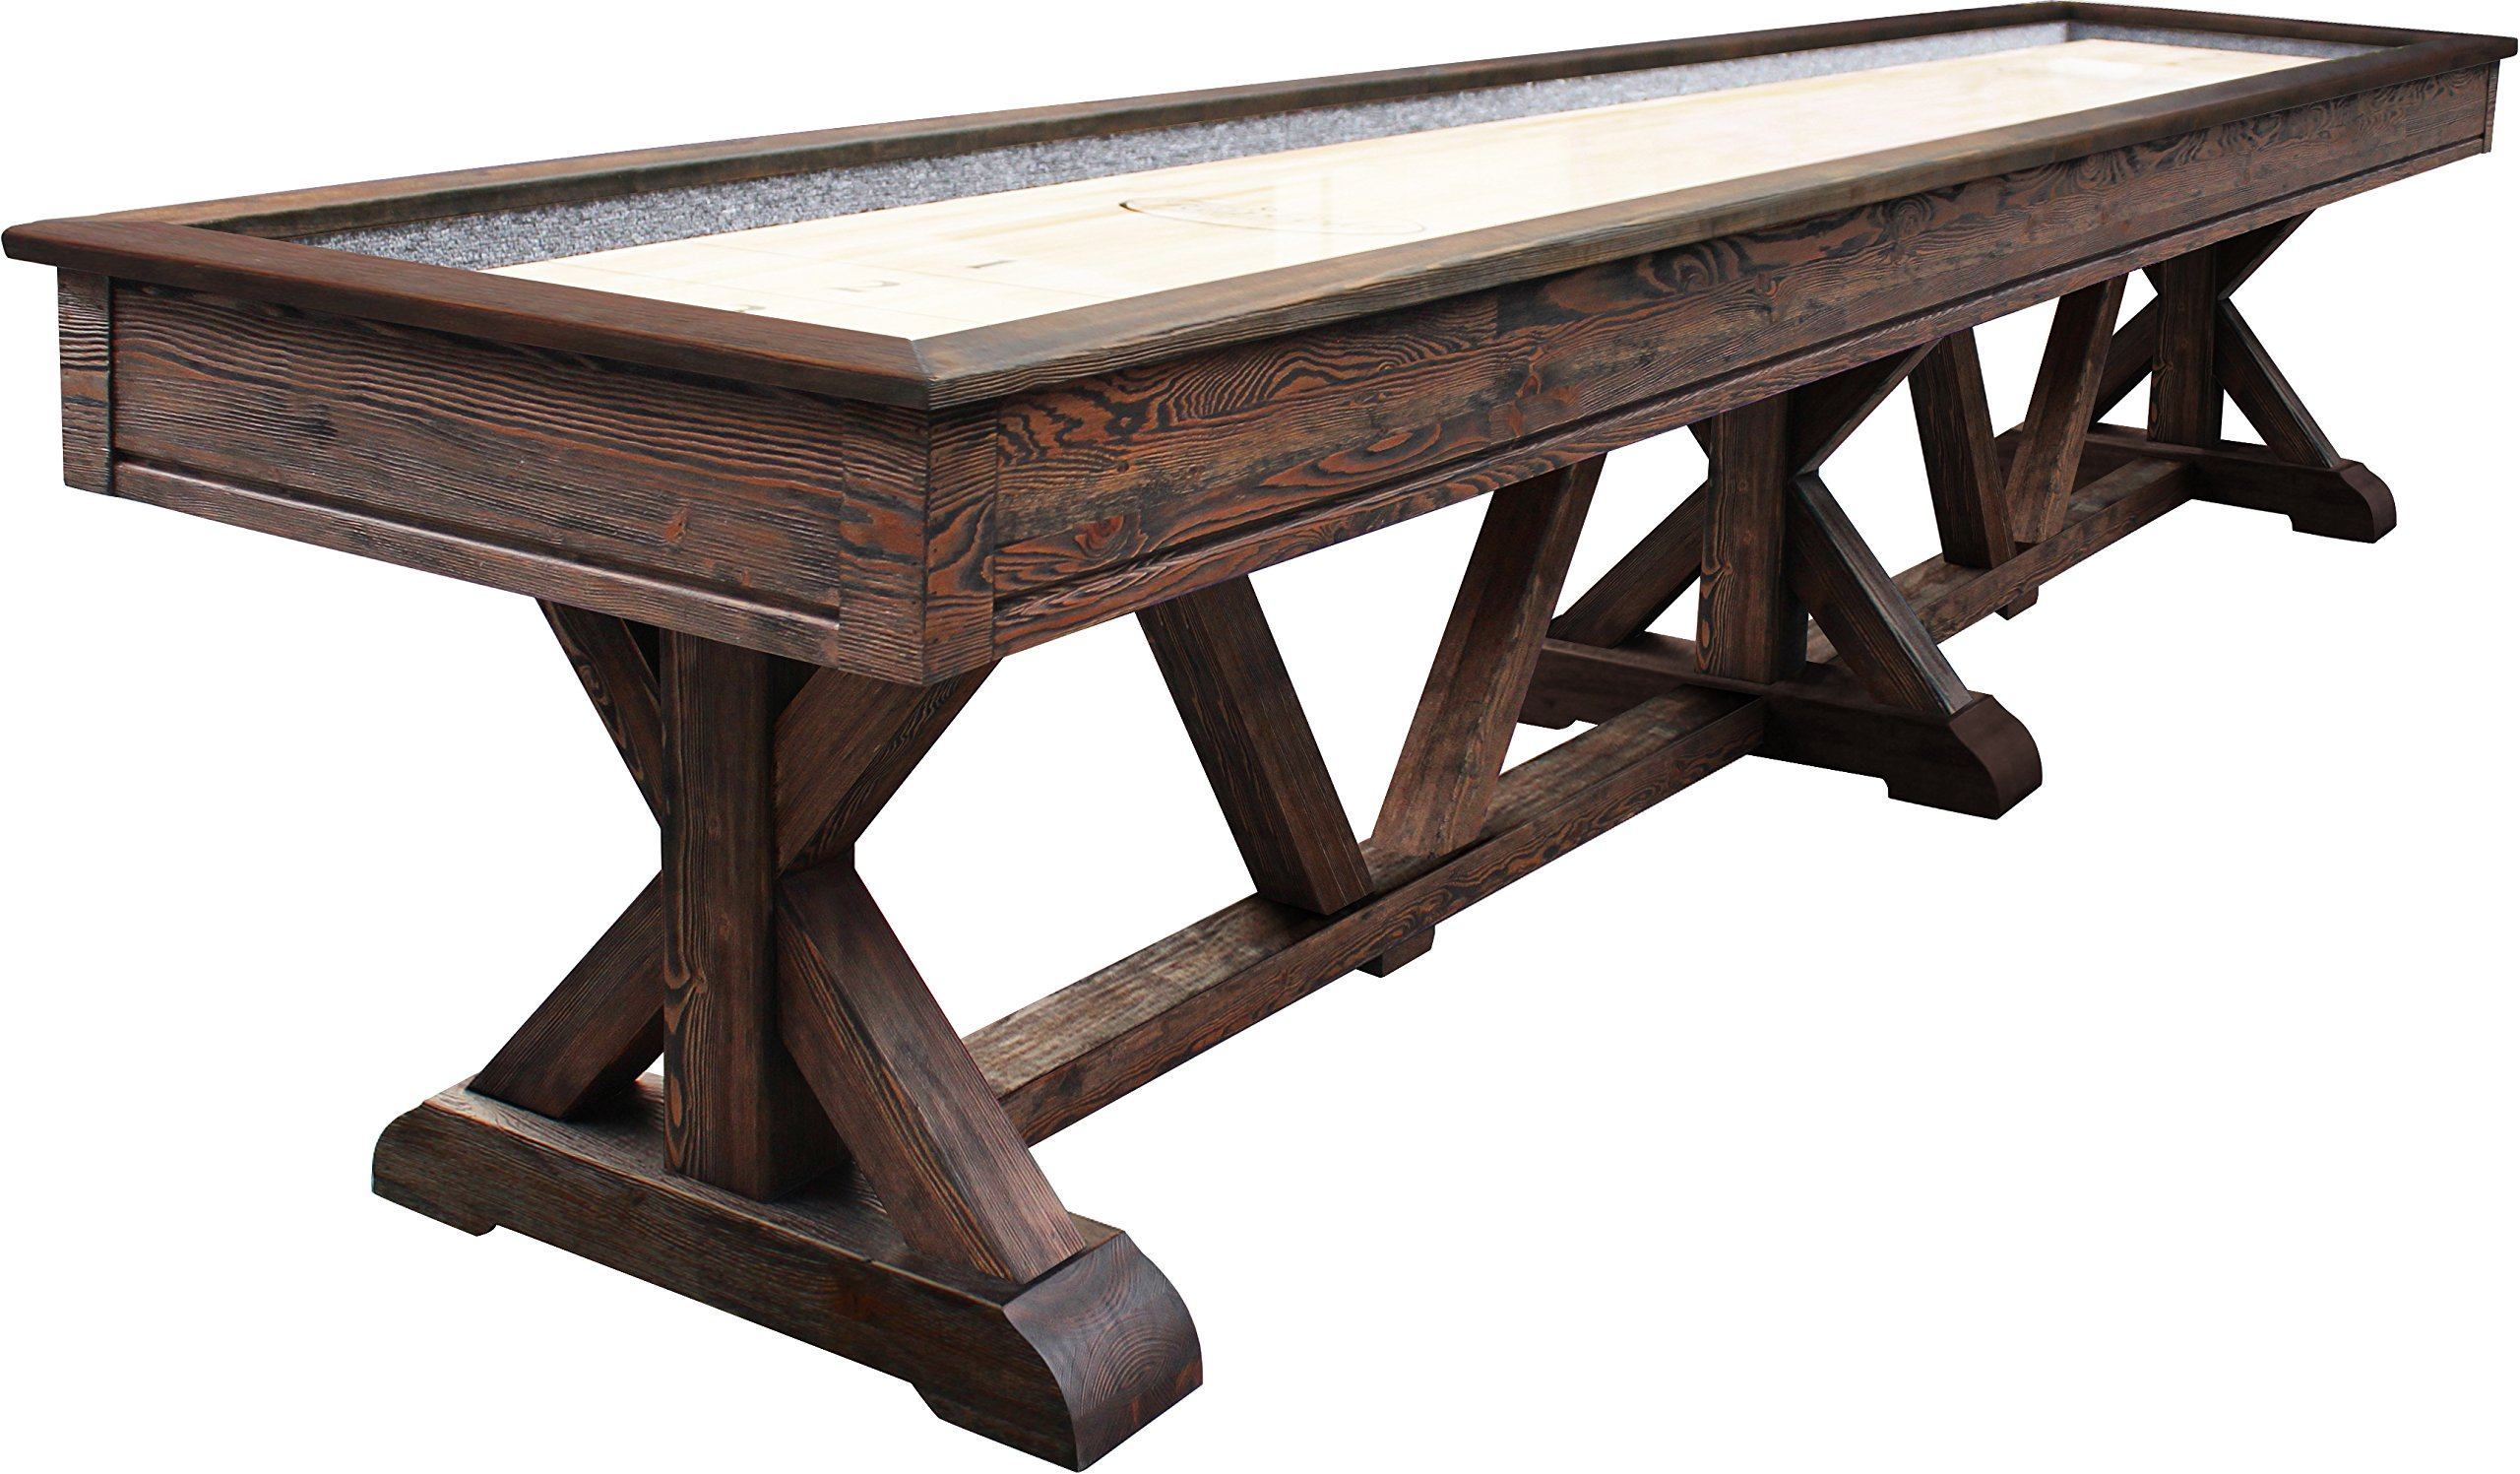 Playcraft Brazos River Pro-Style Shuffleboard Table, Weathered Brown, 16' by Playcraft